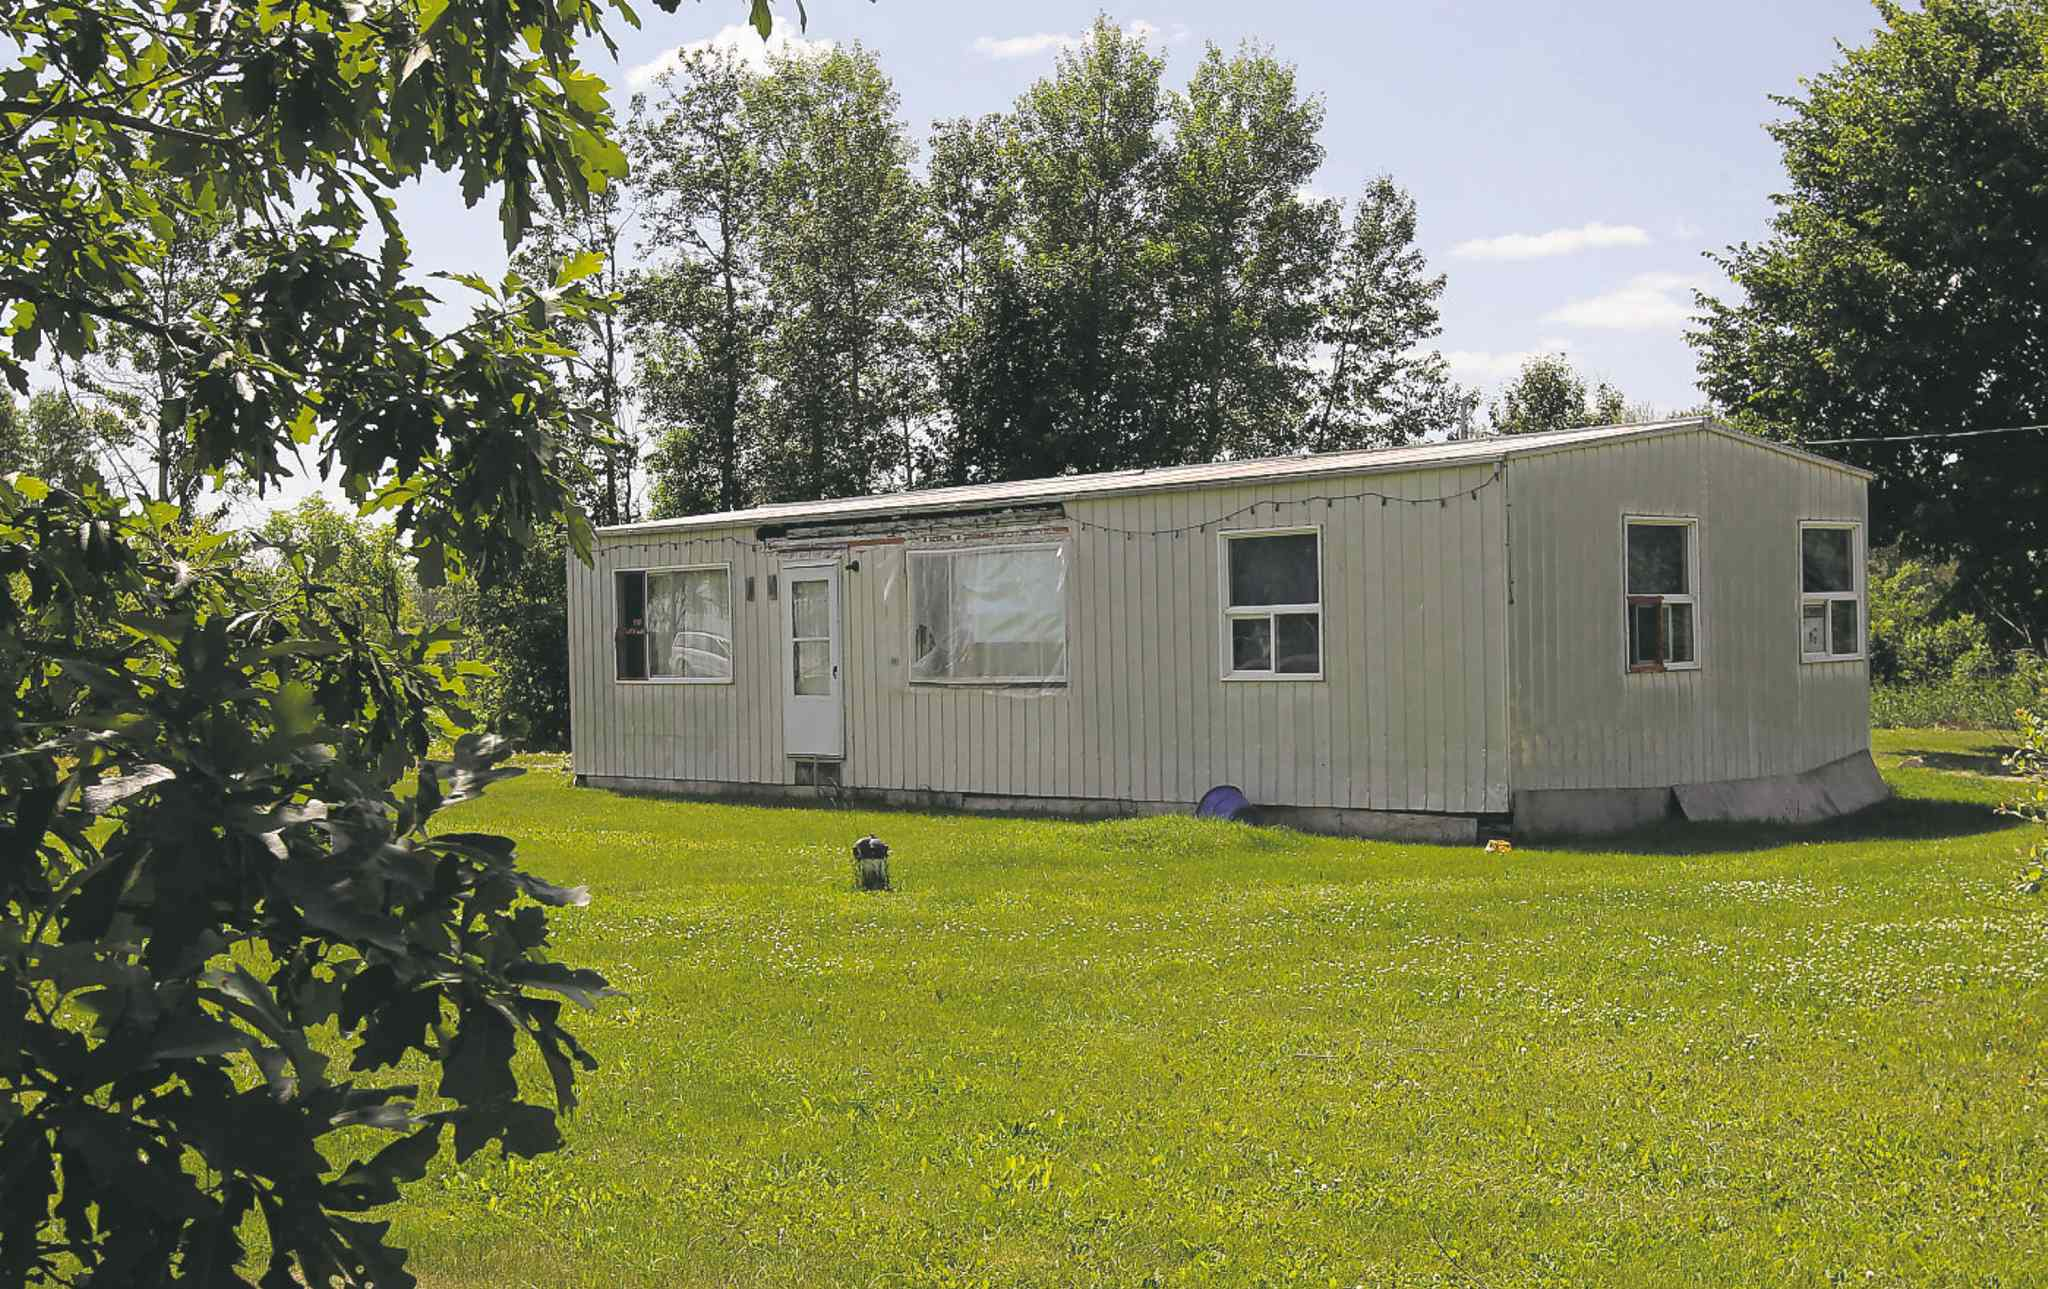 Joe Bryksa / Winnipeg Free Press filesKierra�s home on Peguis First Nation. The 21-month-old died July 17. RCMP have ruled the case a homicide.